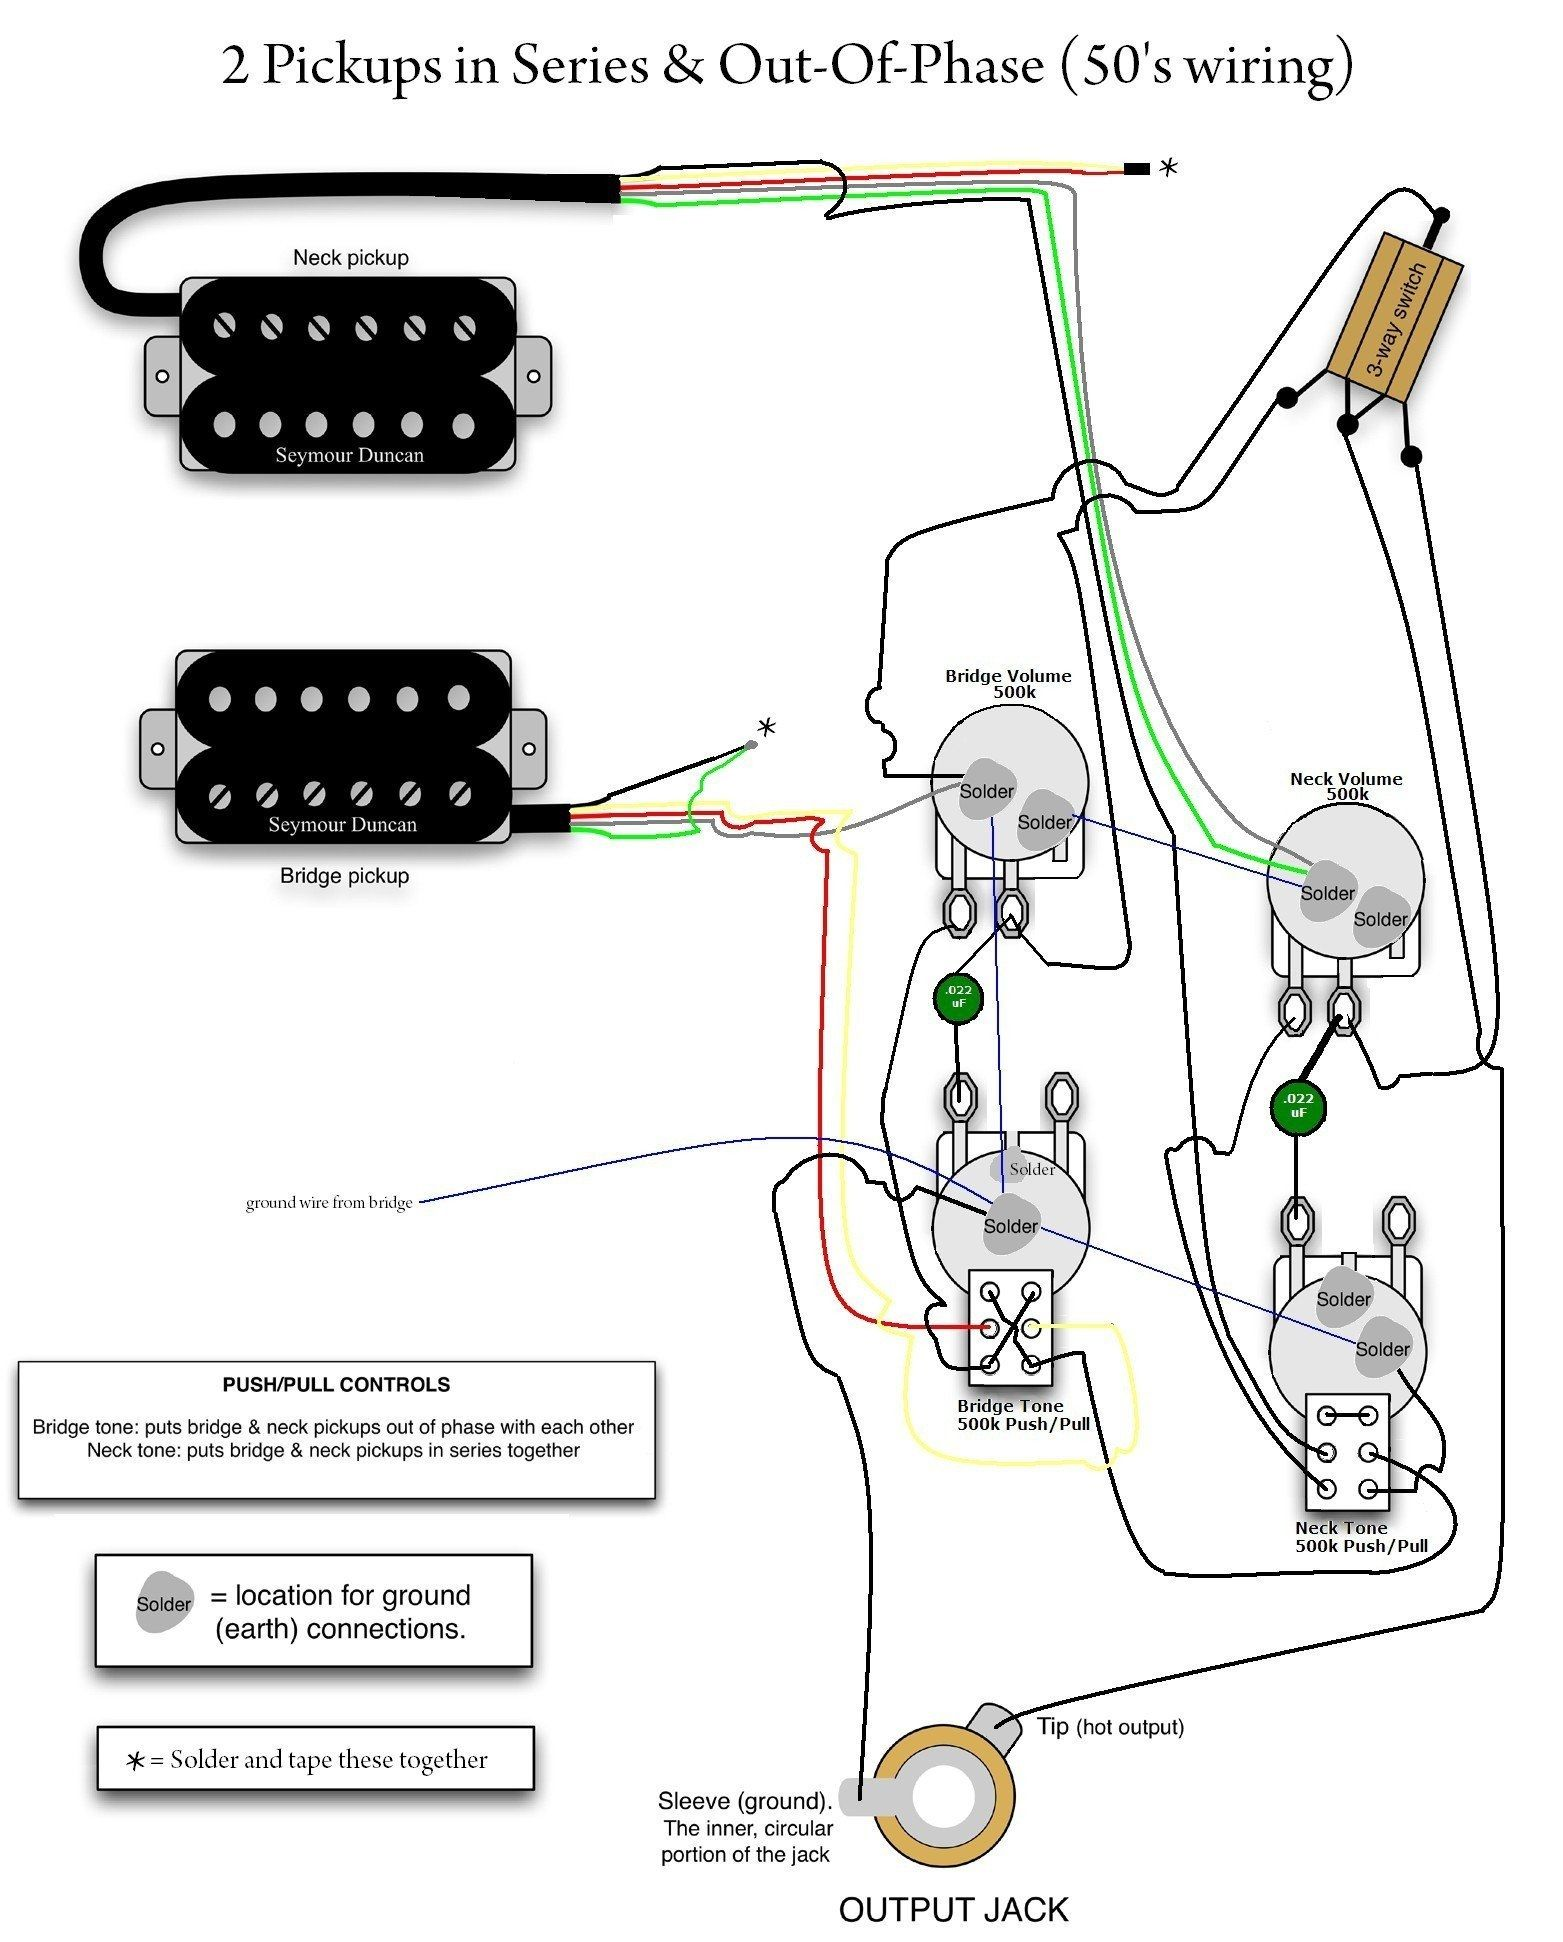 Telecaster Wiring Diagram Moreover Stewmac Wiring Diagrams Les Paul  intended for Stewmac Wiring Diagrams